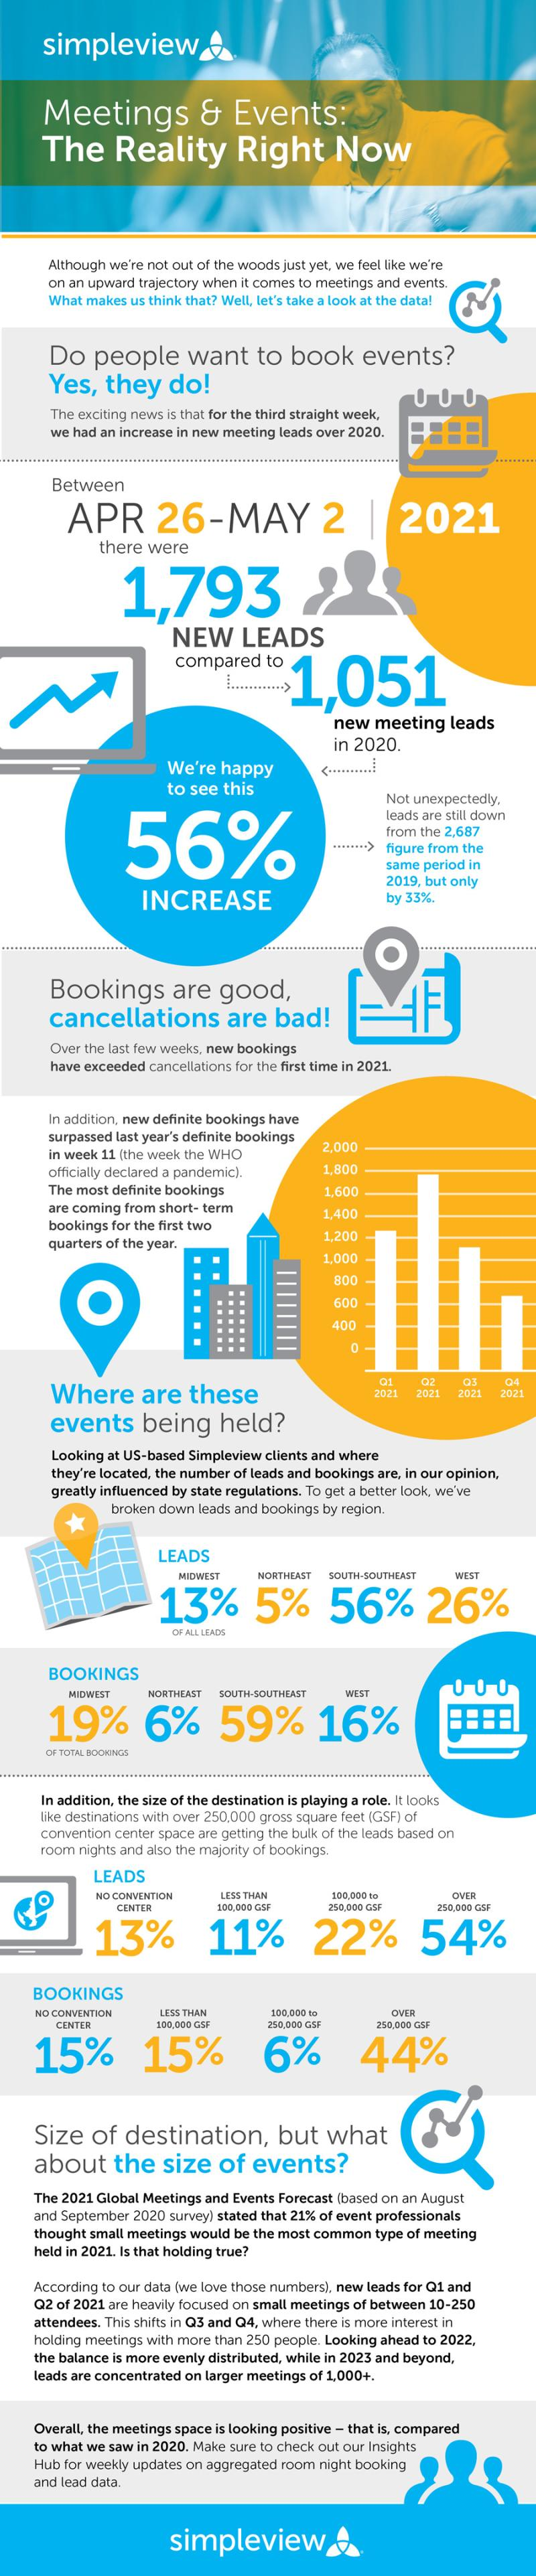 Meetings and Events: The Reality Right Now infographic